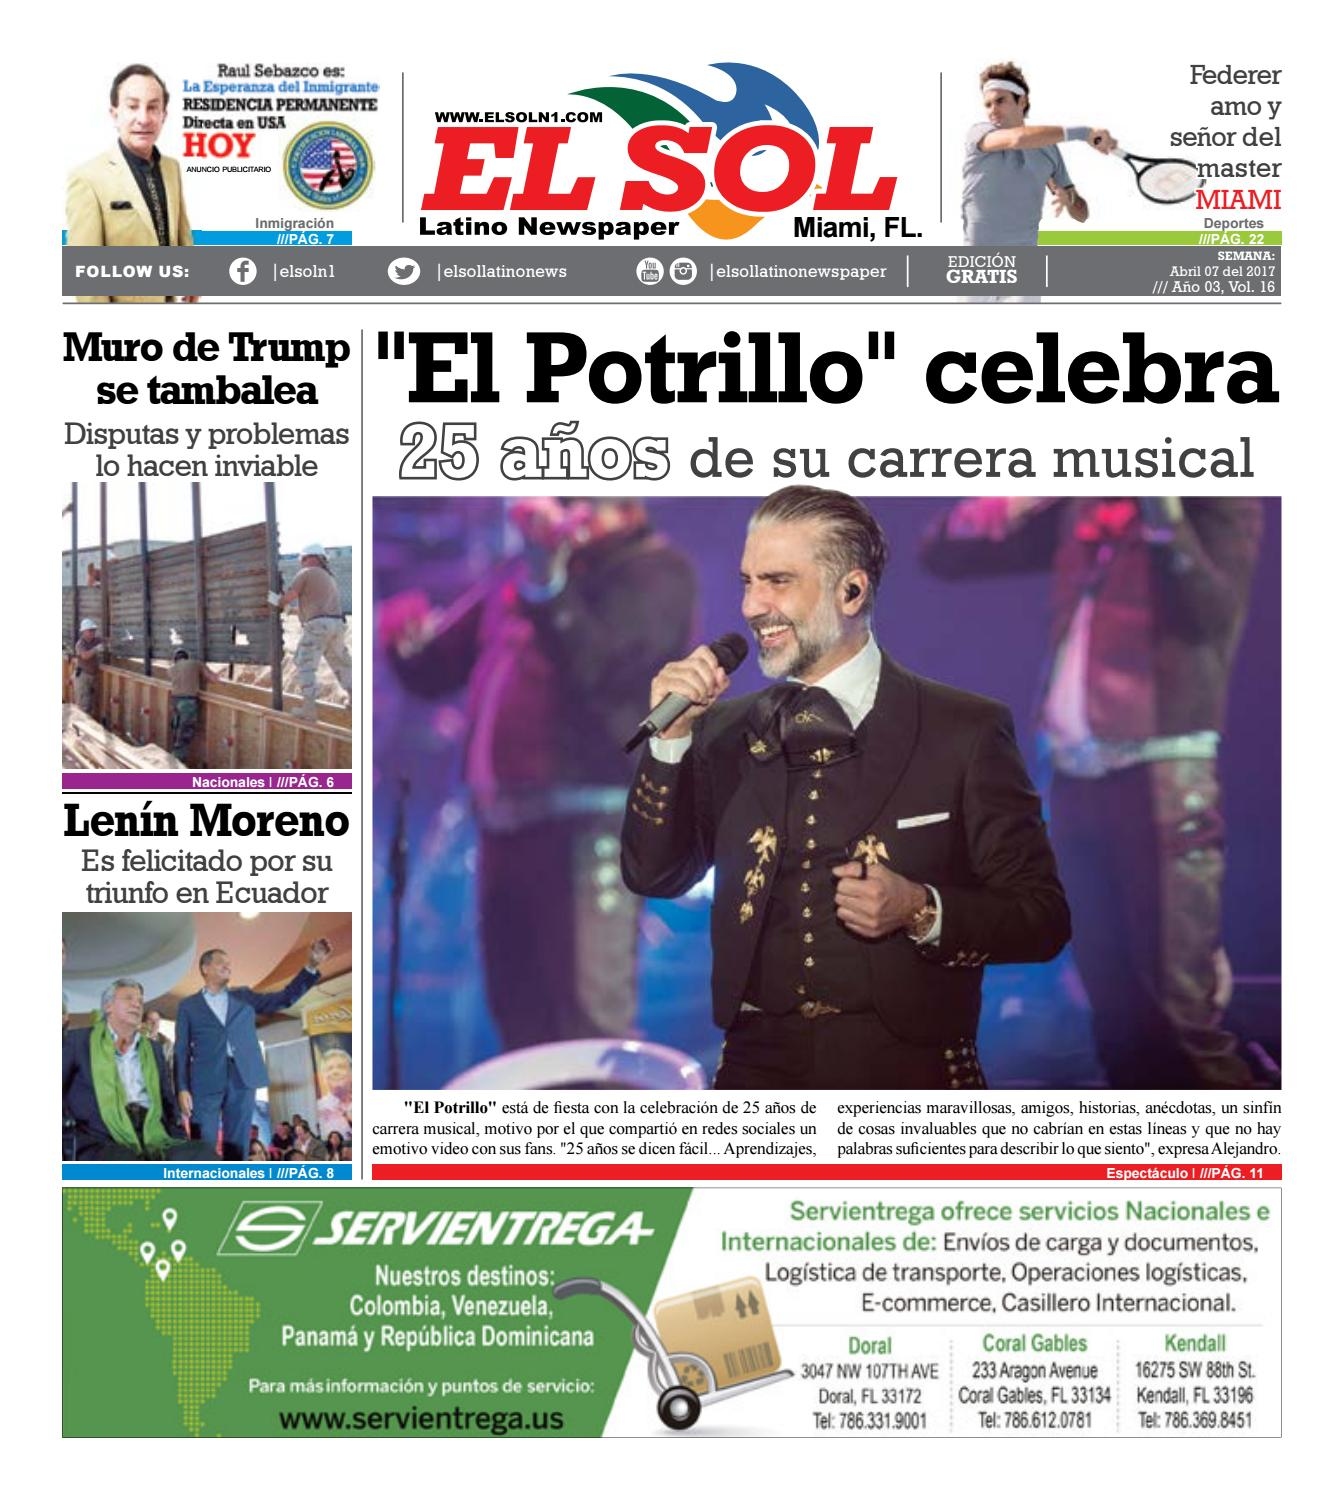 El Sol Miami Vol03#16 Abril 07-2017 by El Sol Latino Newspaper - issuu